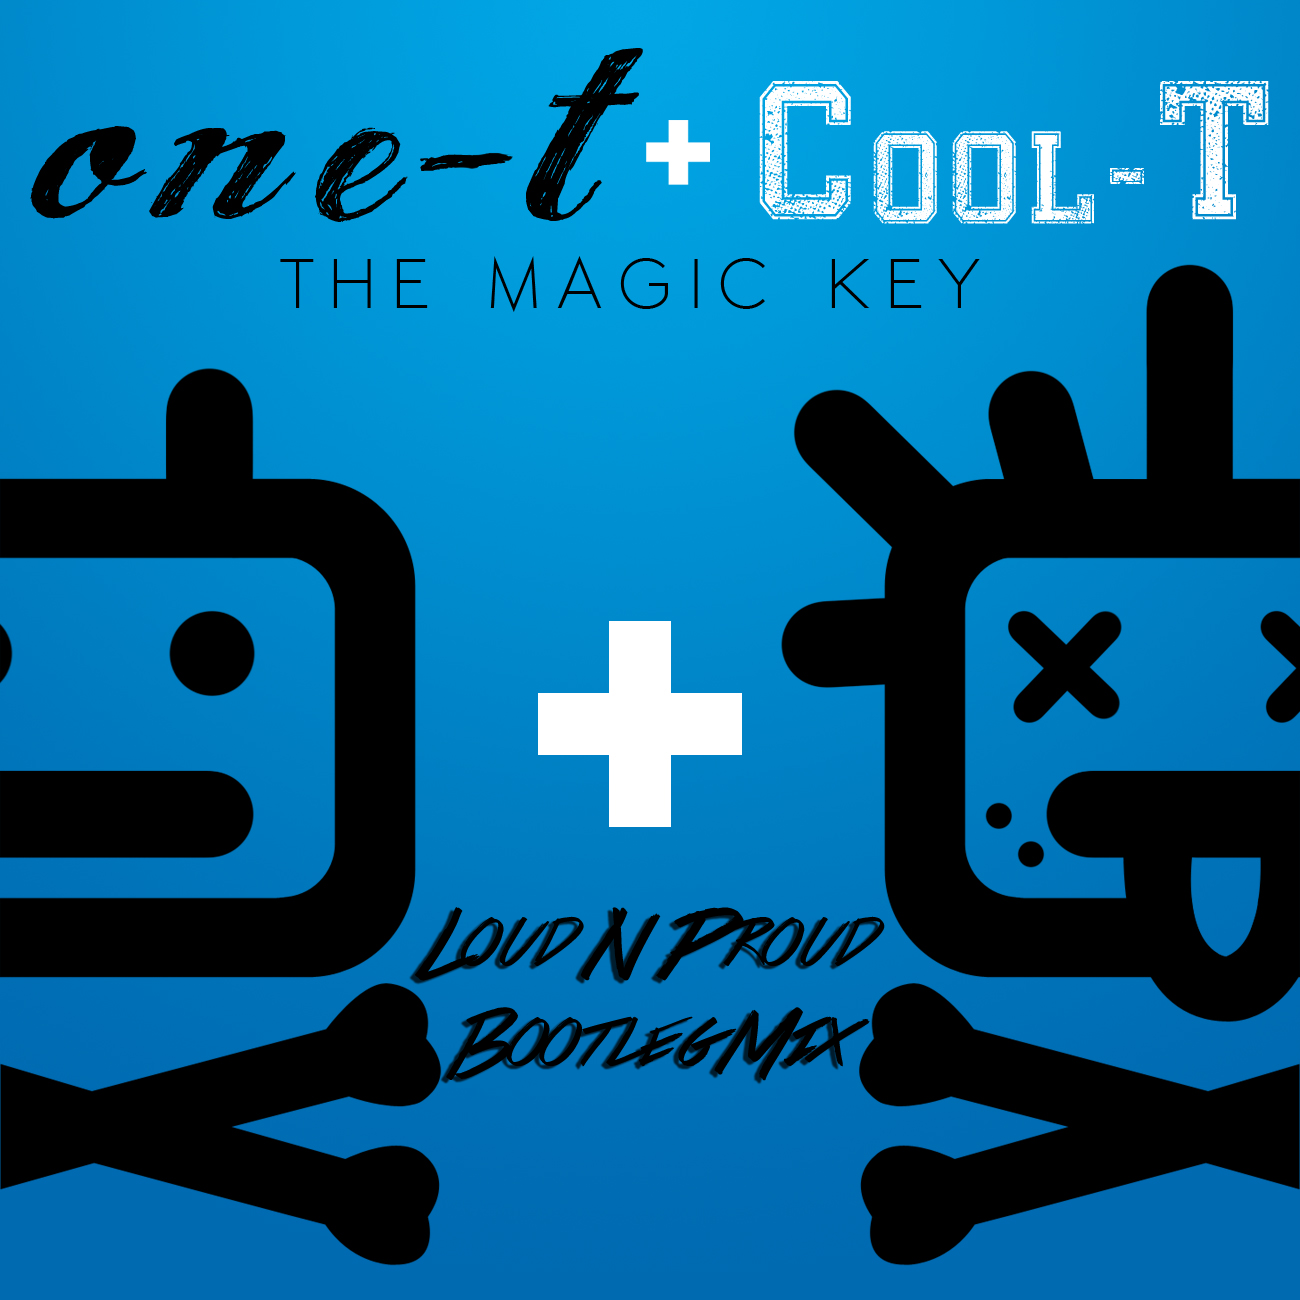 Key magic ru